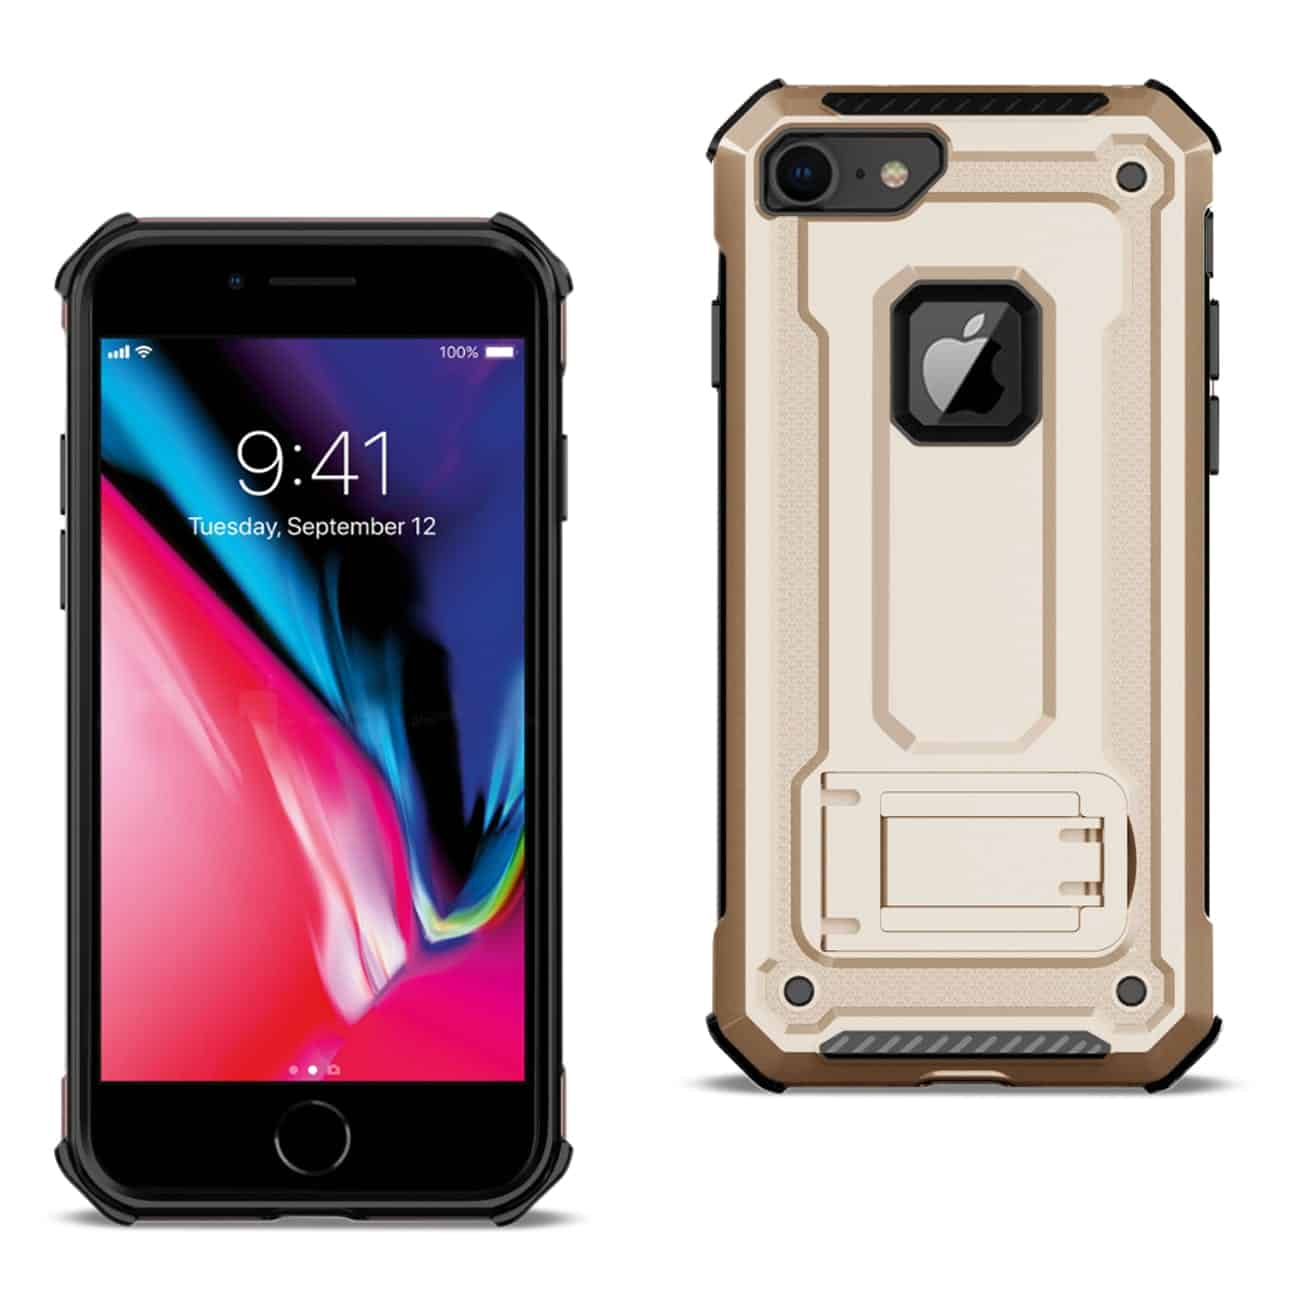 APPLE IPHONE 8 Case With Kickstand In Gold